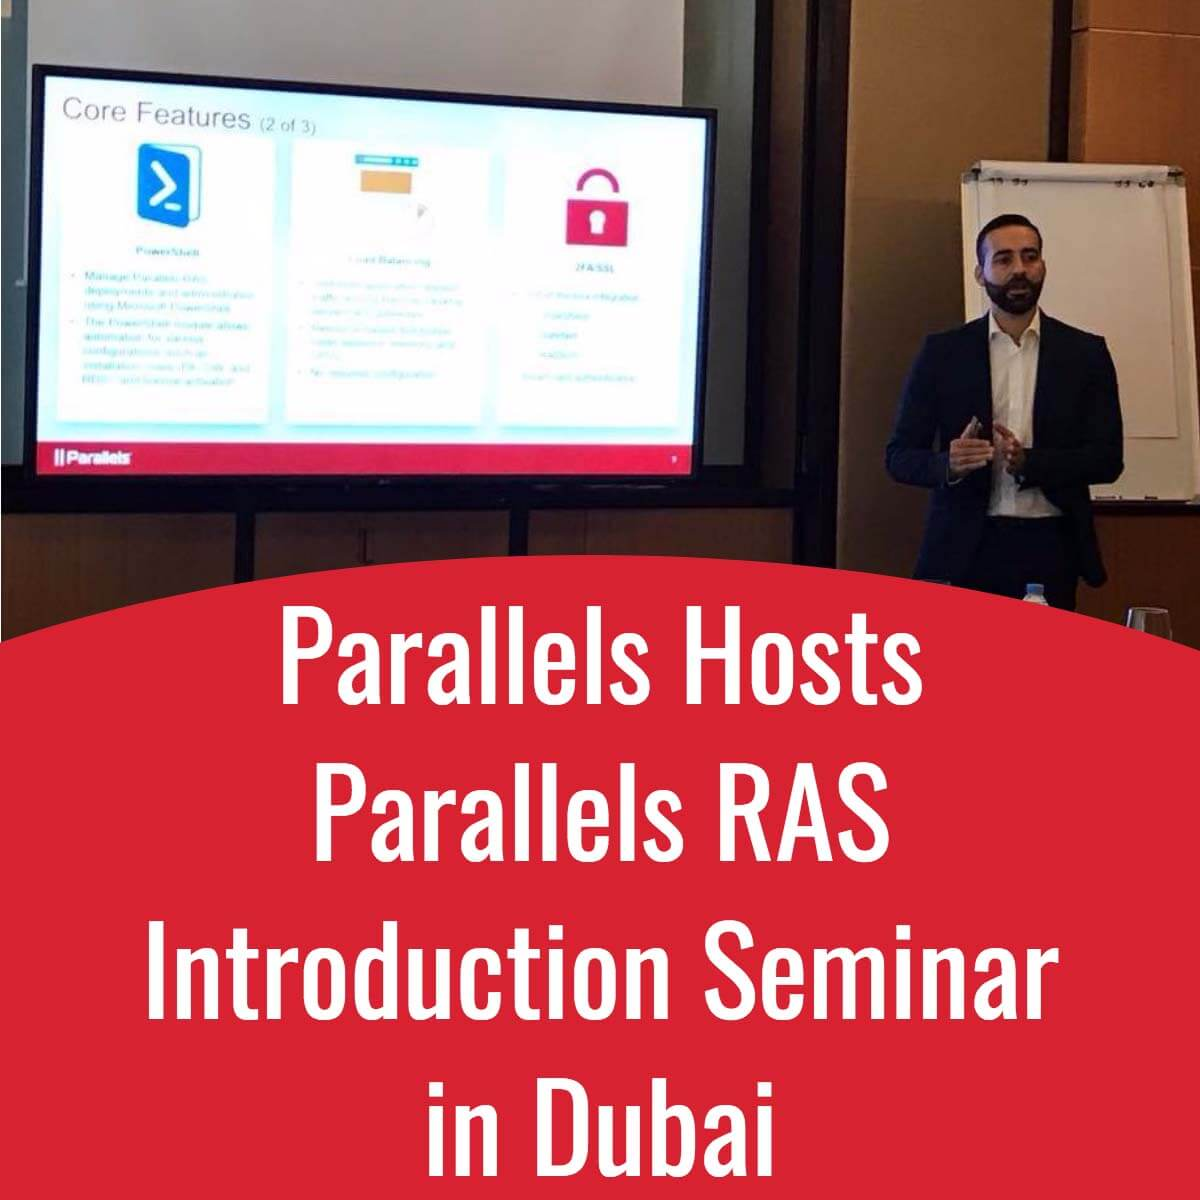 Parallels Hosts Parallels RAS Introduction Seminar in Dubai